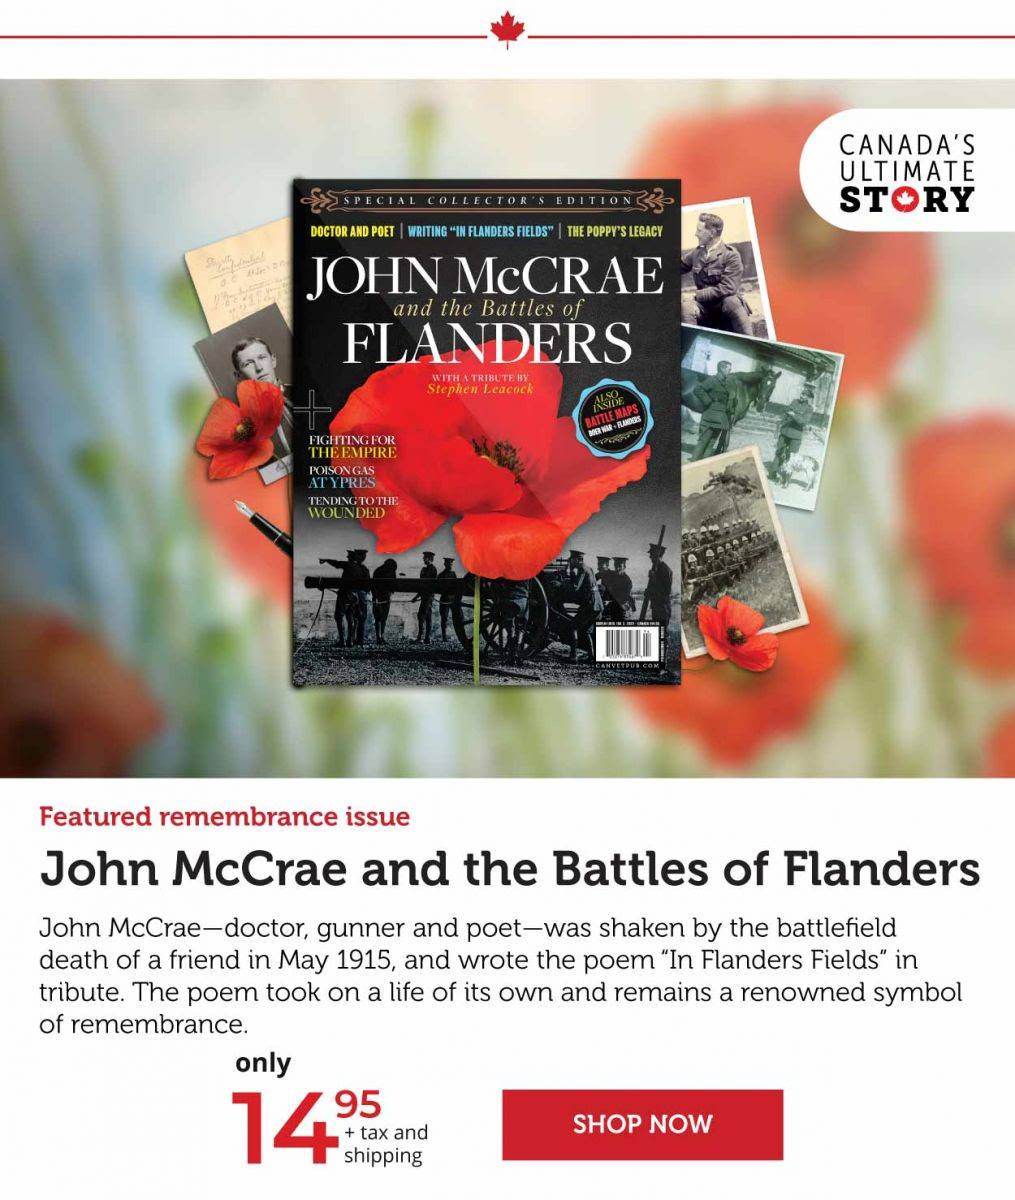 John McCrae and the Battle of Flanders